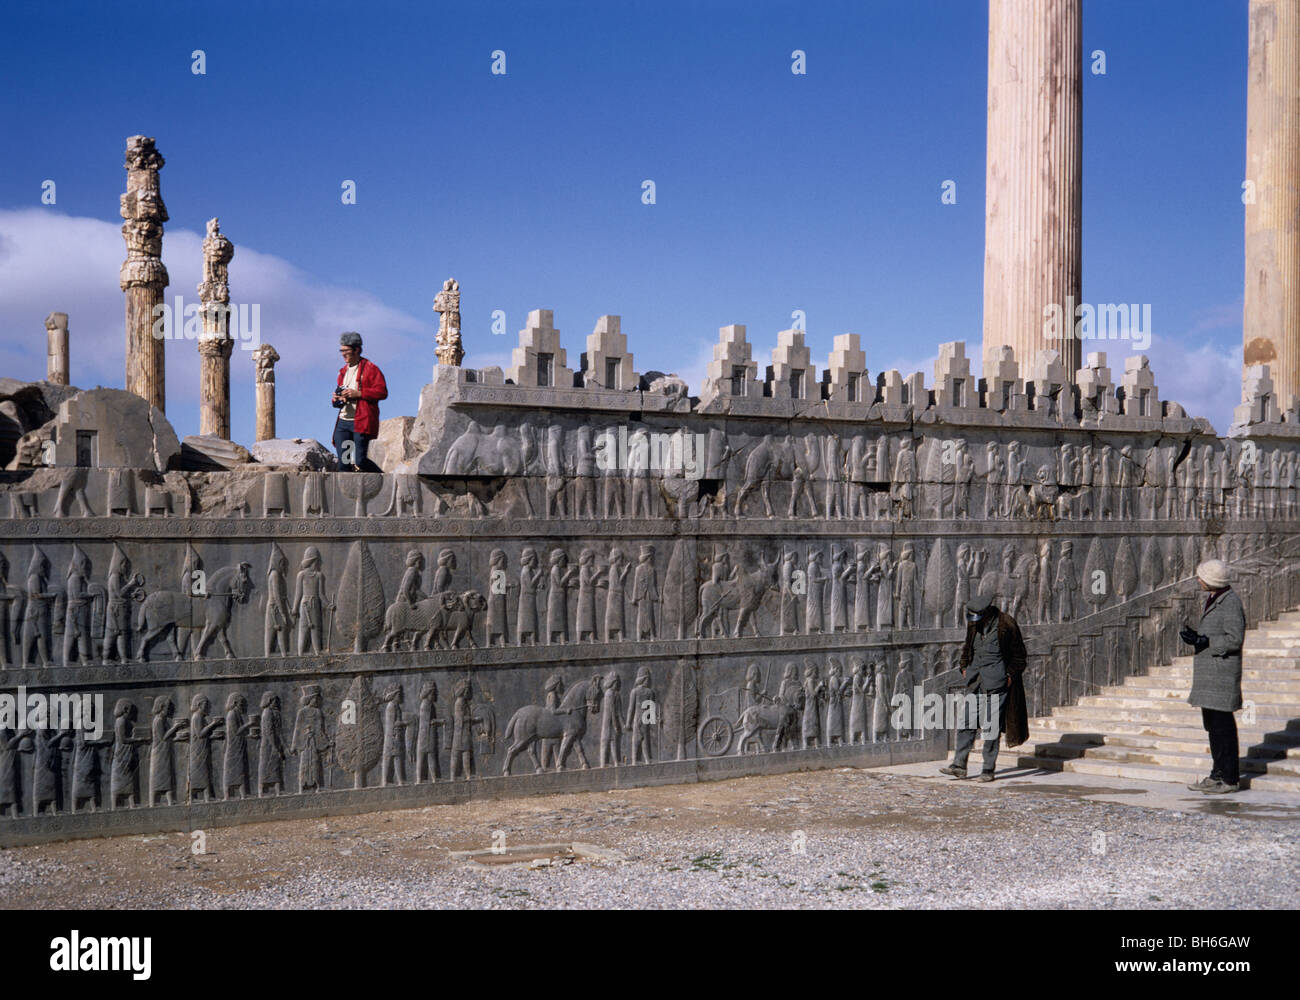 3 with Stock Photo Tourists And The Guardian East Stairway Of The Apadana Persepolis 27804081 on 42555232 0 further Wohnen Im Landhausstil moreover Wisma Sanyan likewise The California Loft Of Dave Navarro together with 4dd53bcdfa7645a53caaca6f.